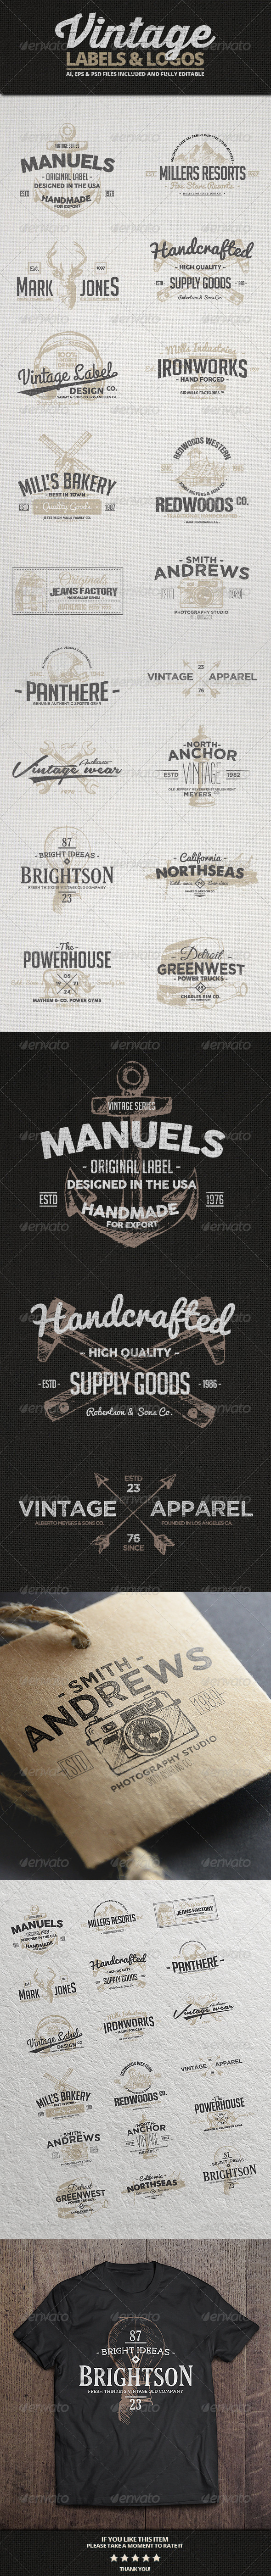 GraphicRiver Vintage Labels & Logos Vol.3 8207558